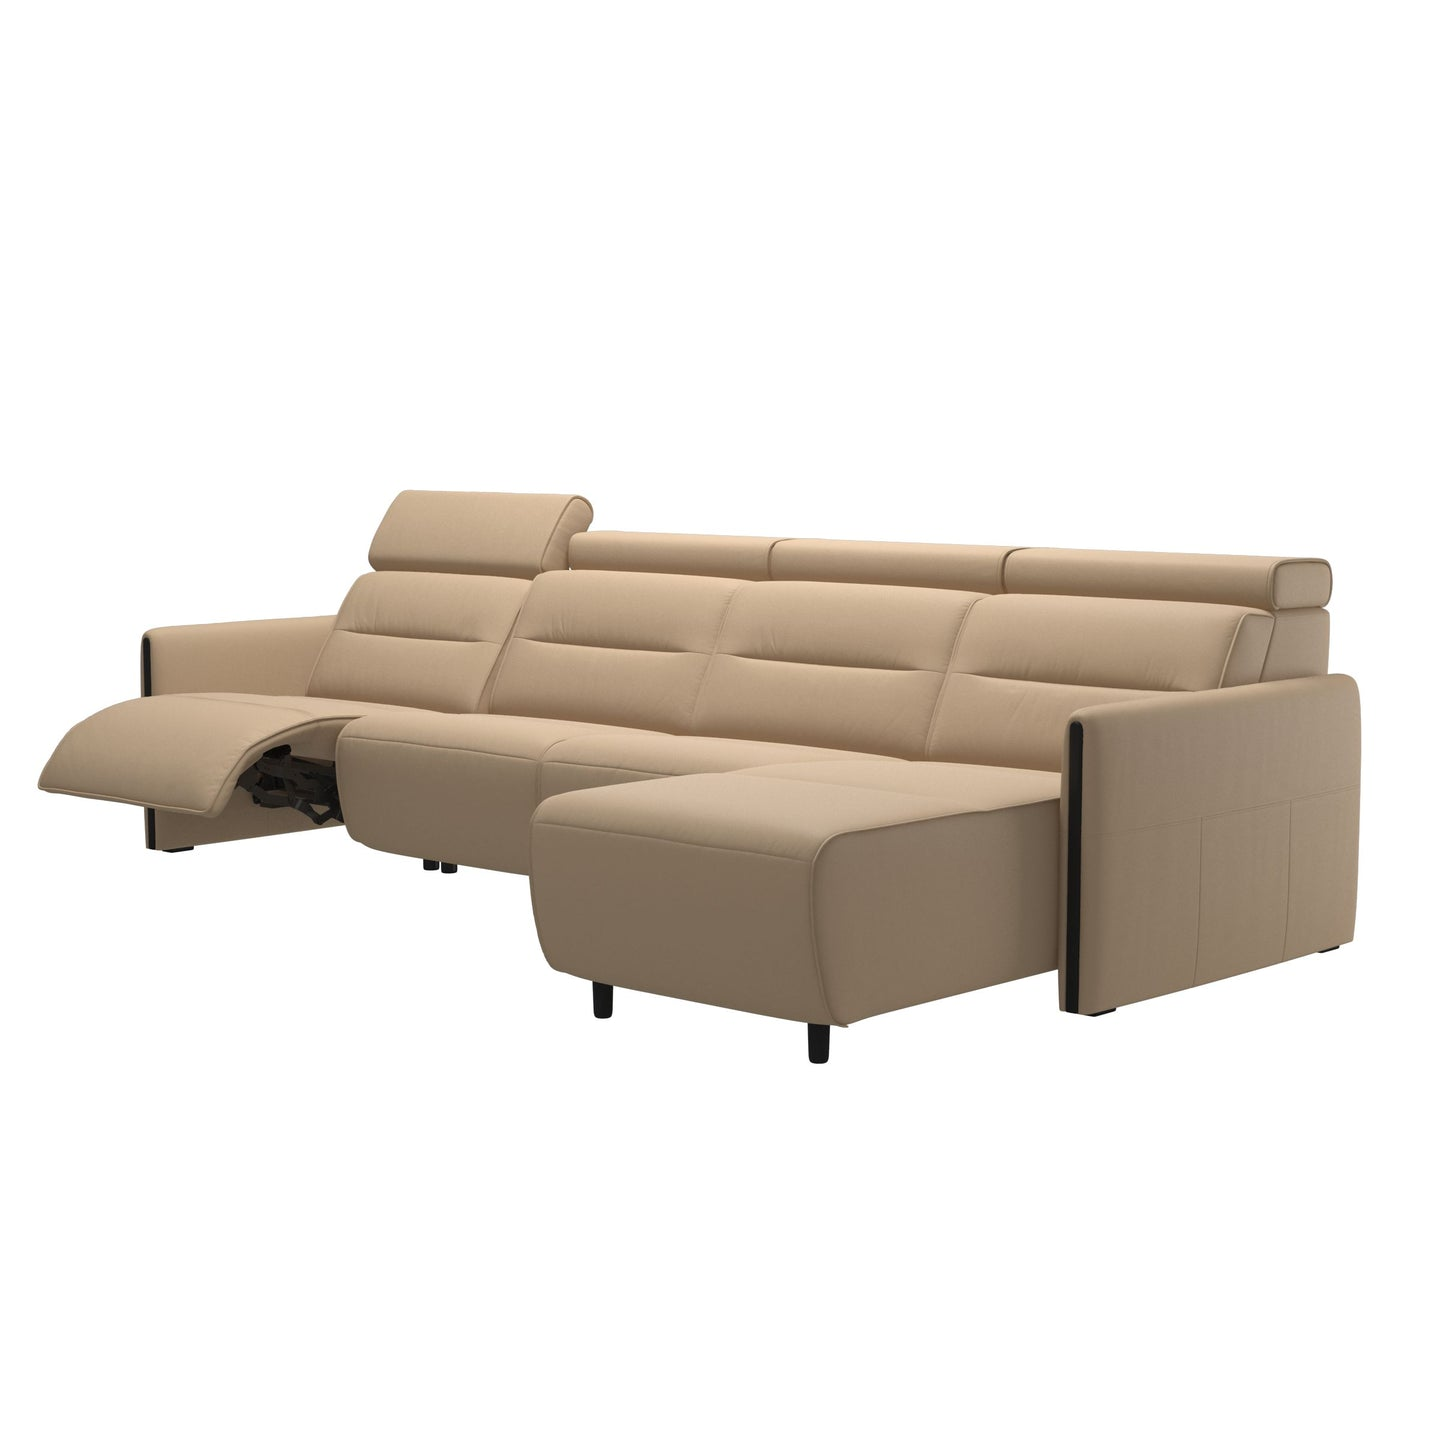 Stressless® Emily arm wood 3 seater Power left with Long Seat